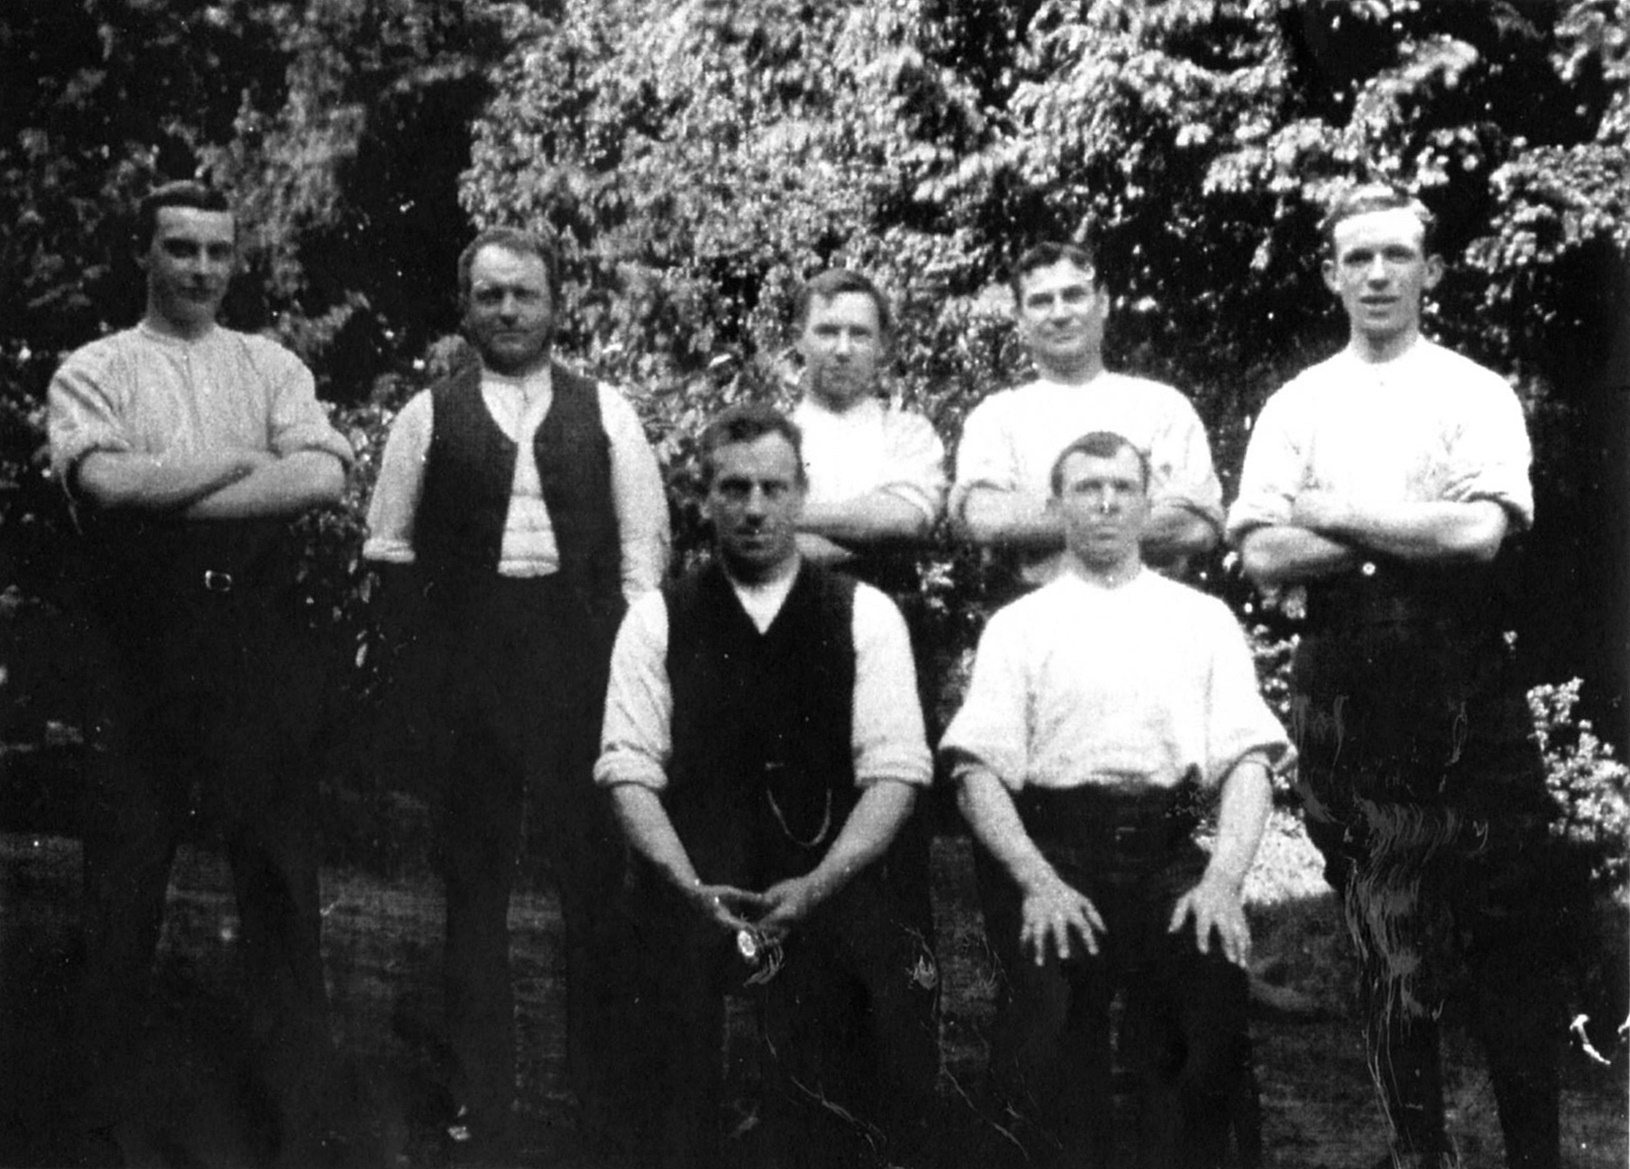 """Woodmen in the 1910s-20, not yet identified, though captioned """"Frank Munt, Harrold, Charles, Sam Sheppard, Alf"""""""